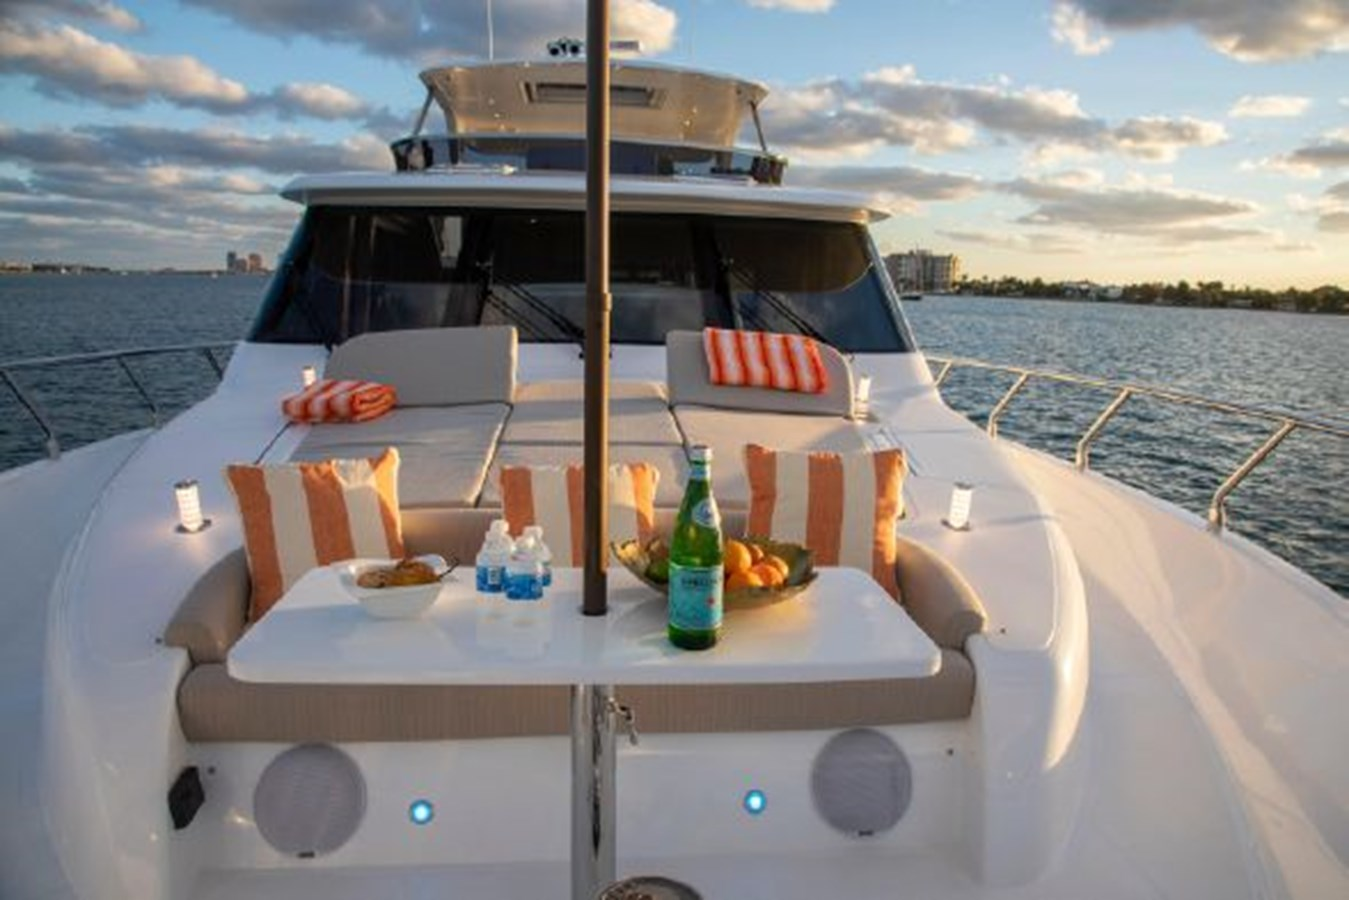 Foredeck Entertainment Area with Stereo and Pop-up Lighting 2020 REGENCY P65 Motor Yacht 2833179